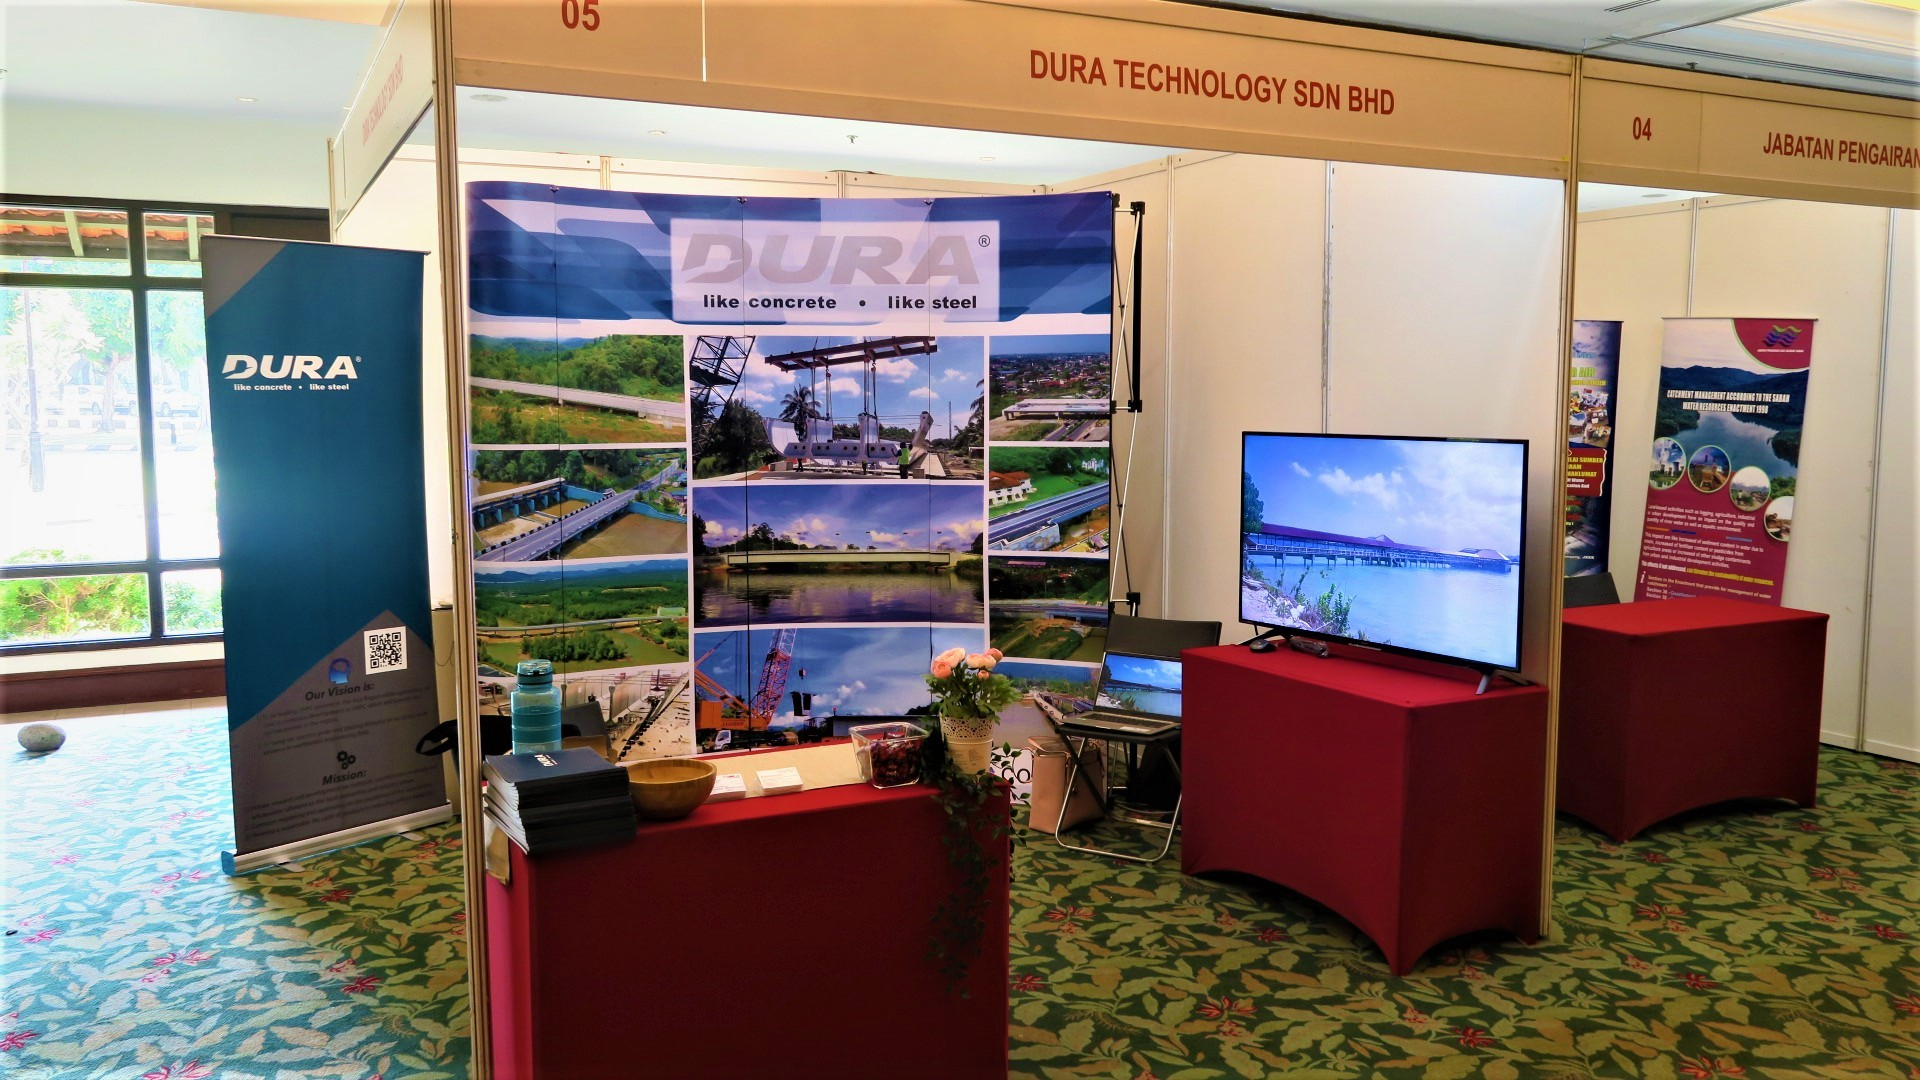 Booth by Dura Technology.